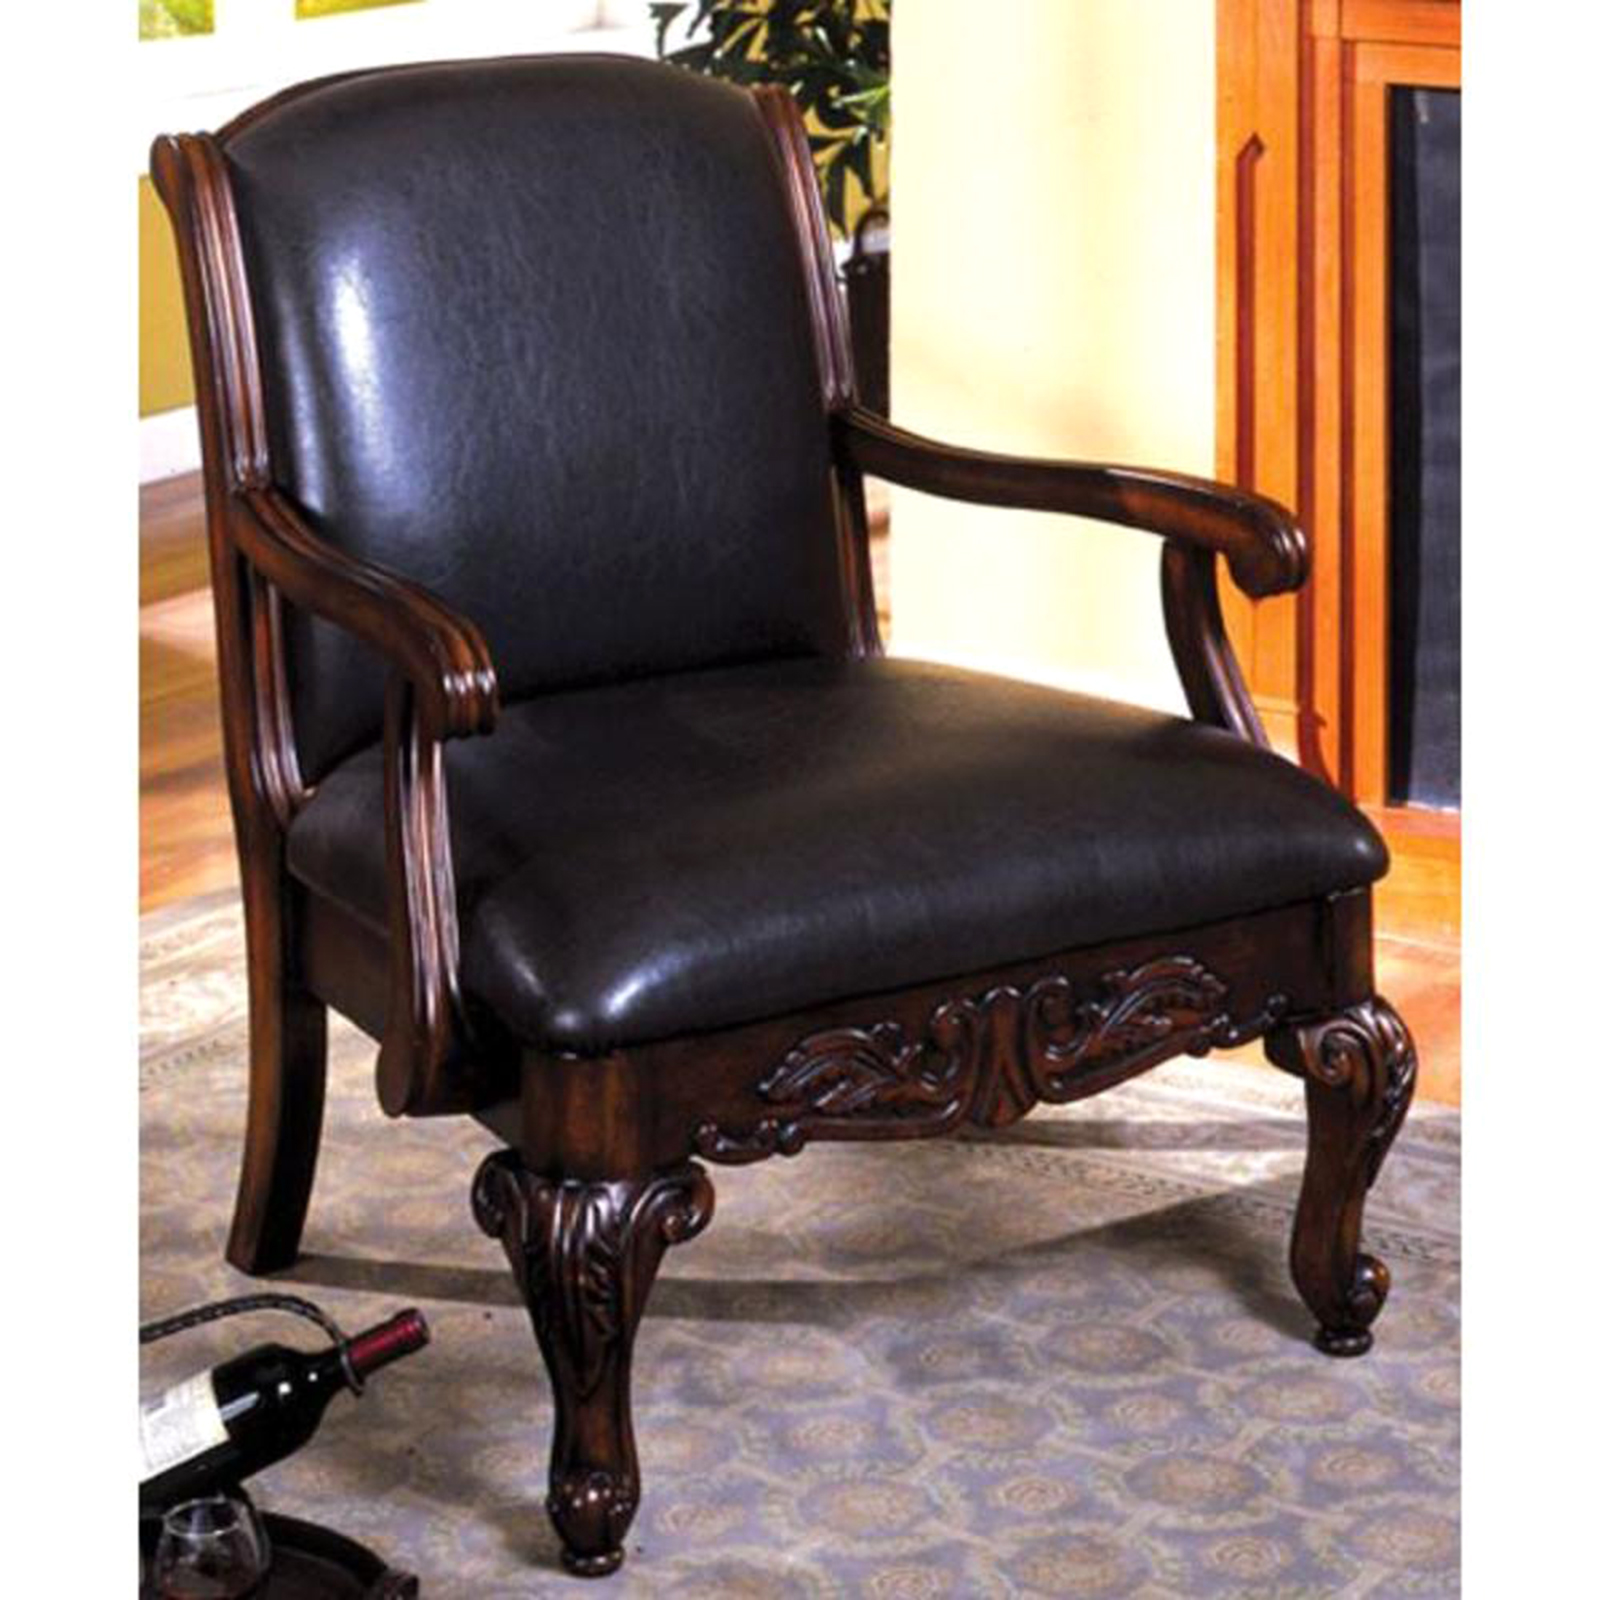 Antique Accent Chairs Furniture Of America Classic Antique Accent Chair Sears Marketplace